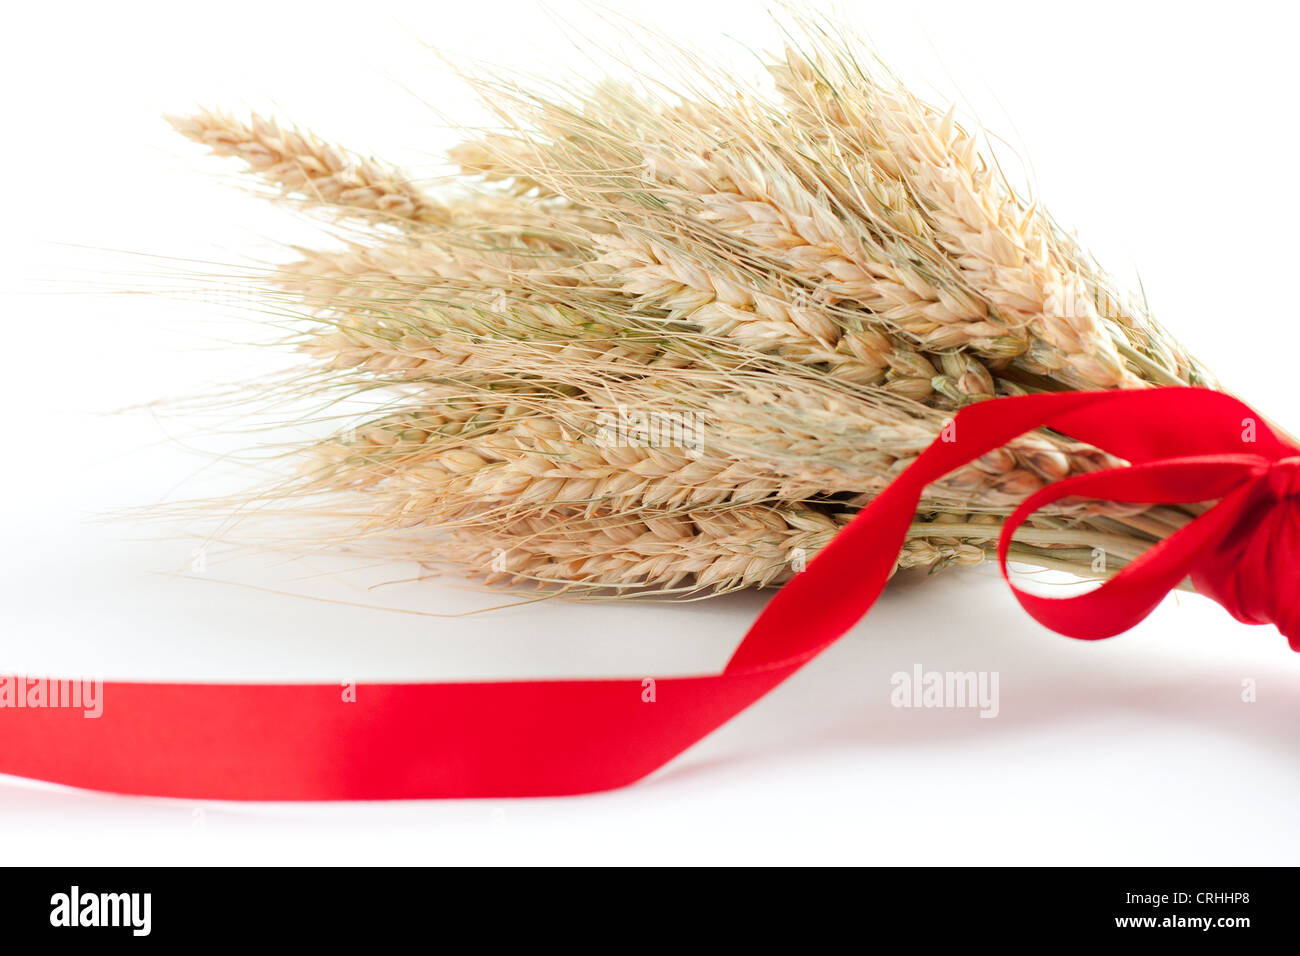 Spikes of wheat. Ripe ears of corn tied with red ribbon - Stock Image